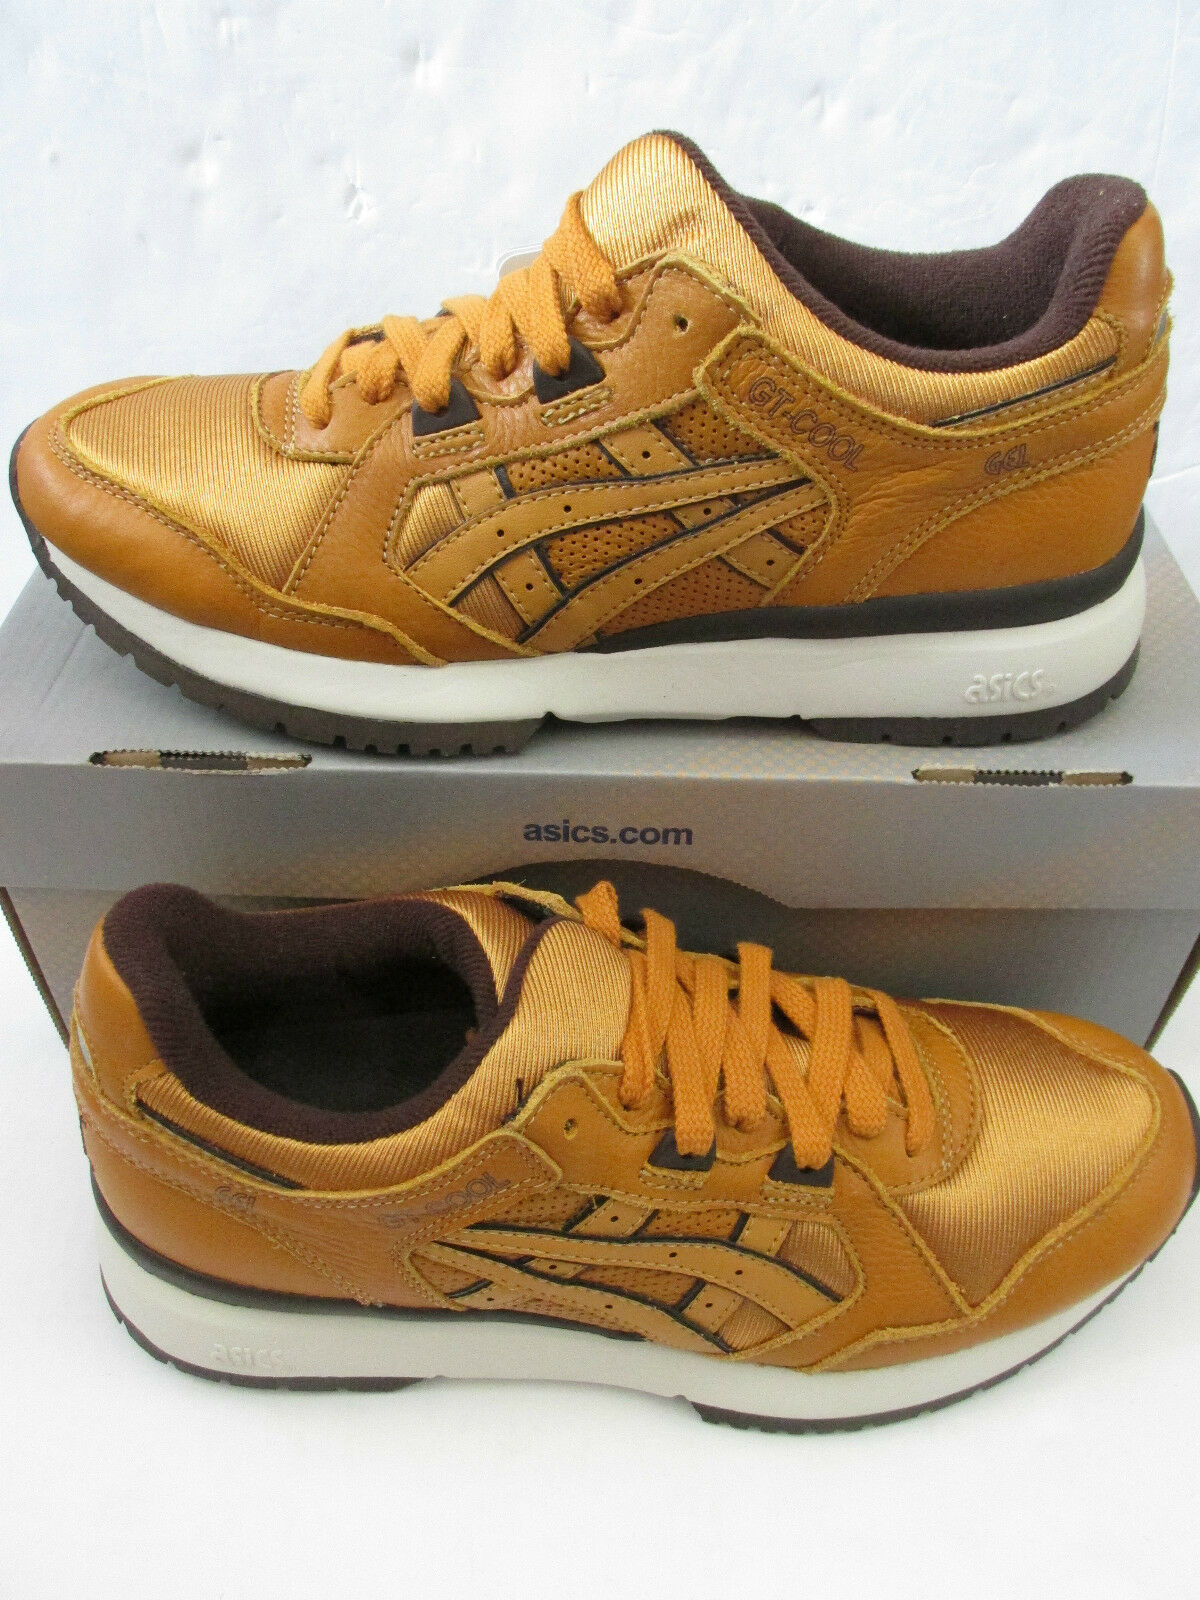 asics GT-COOL mens trainers H432L 7171 sneaker shoes